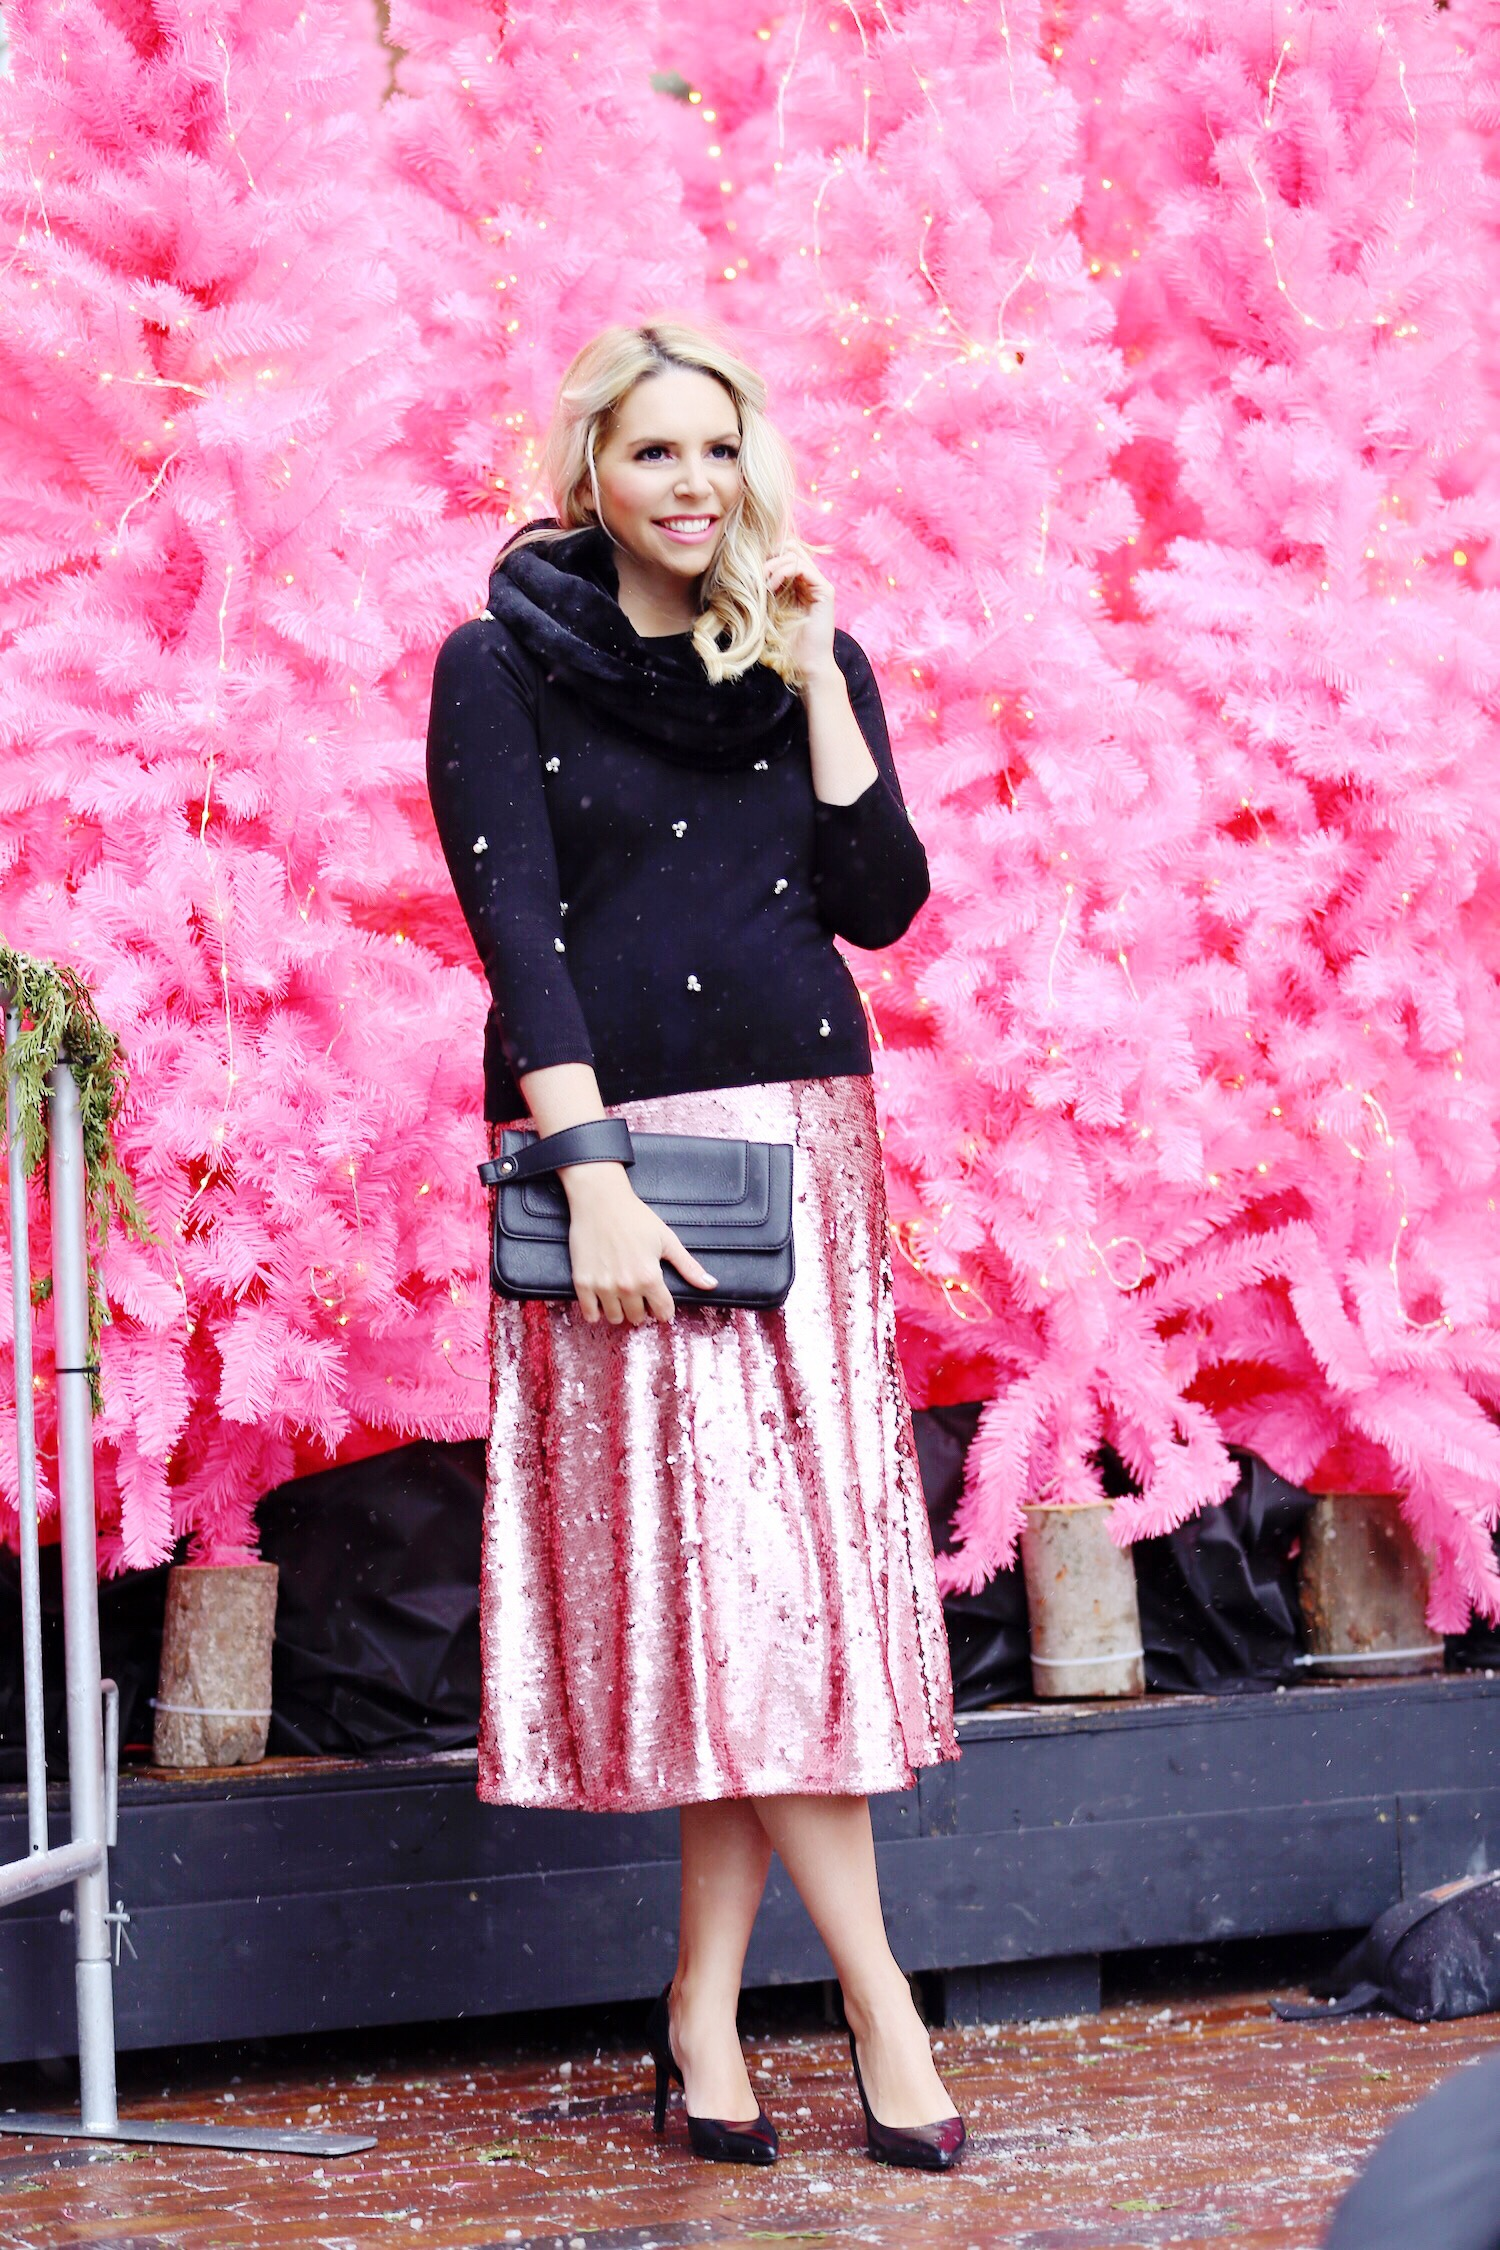 pink-the-town-amanda-losier-5